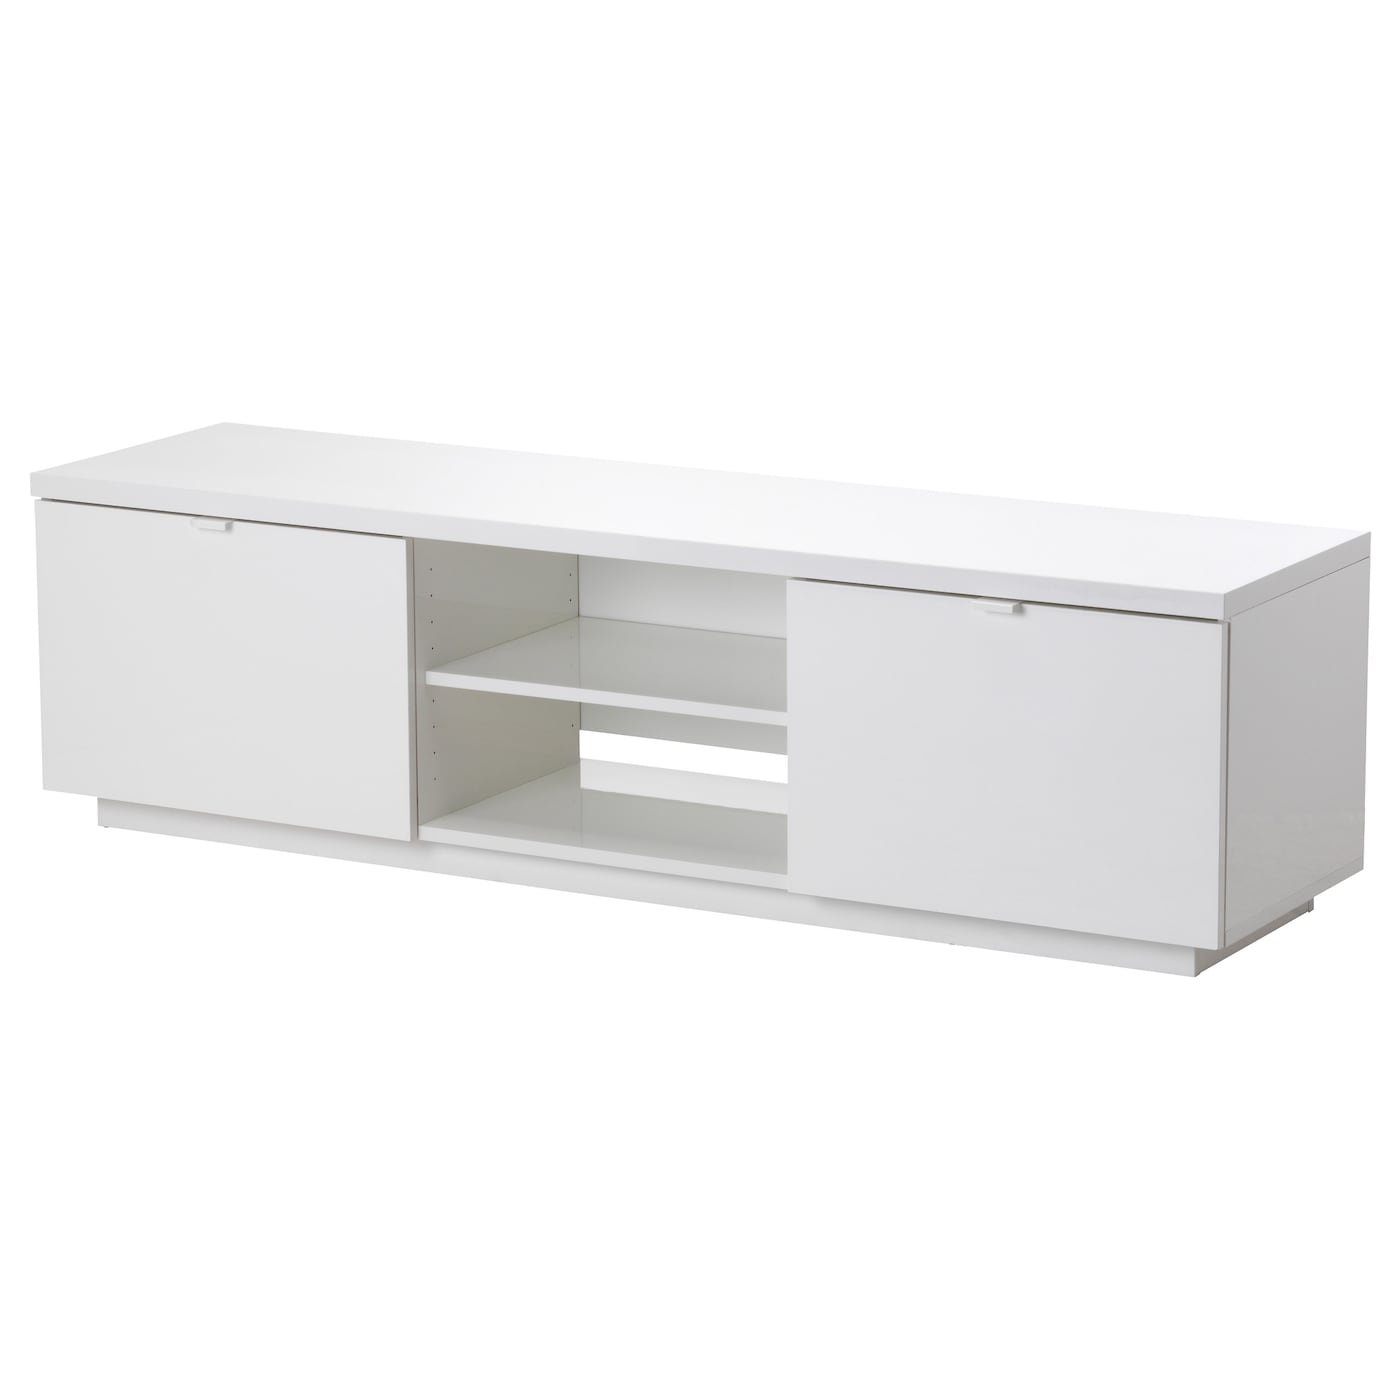 By S Banc Tv Brillant Blanc 160x42x45 Cm Ikea # Meuble Tv Ikea Bous Blanc